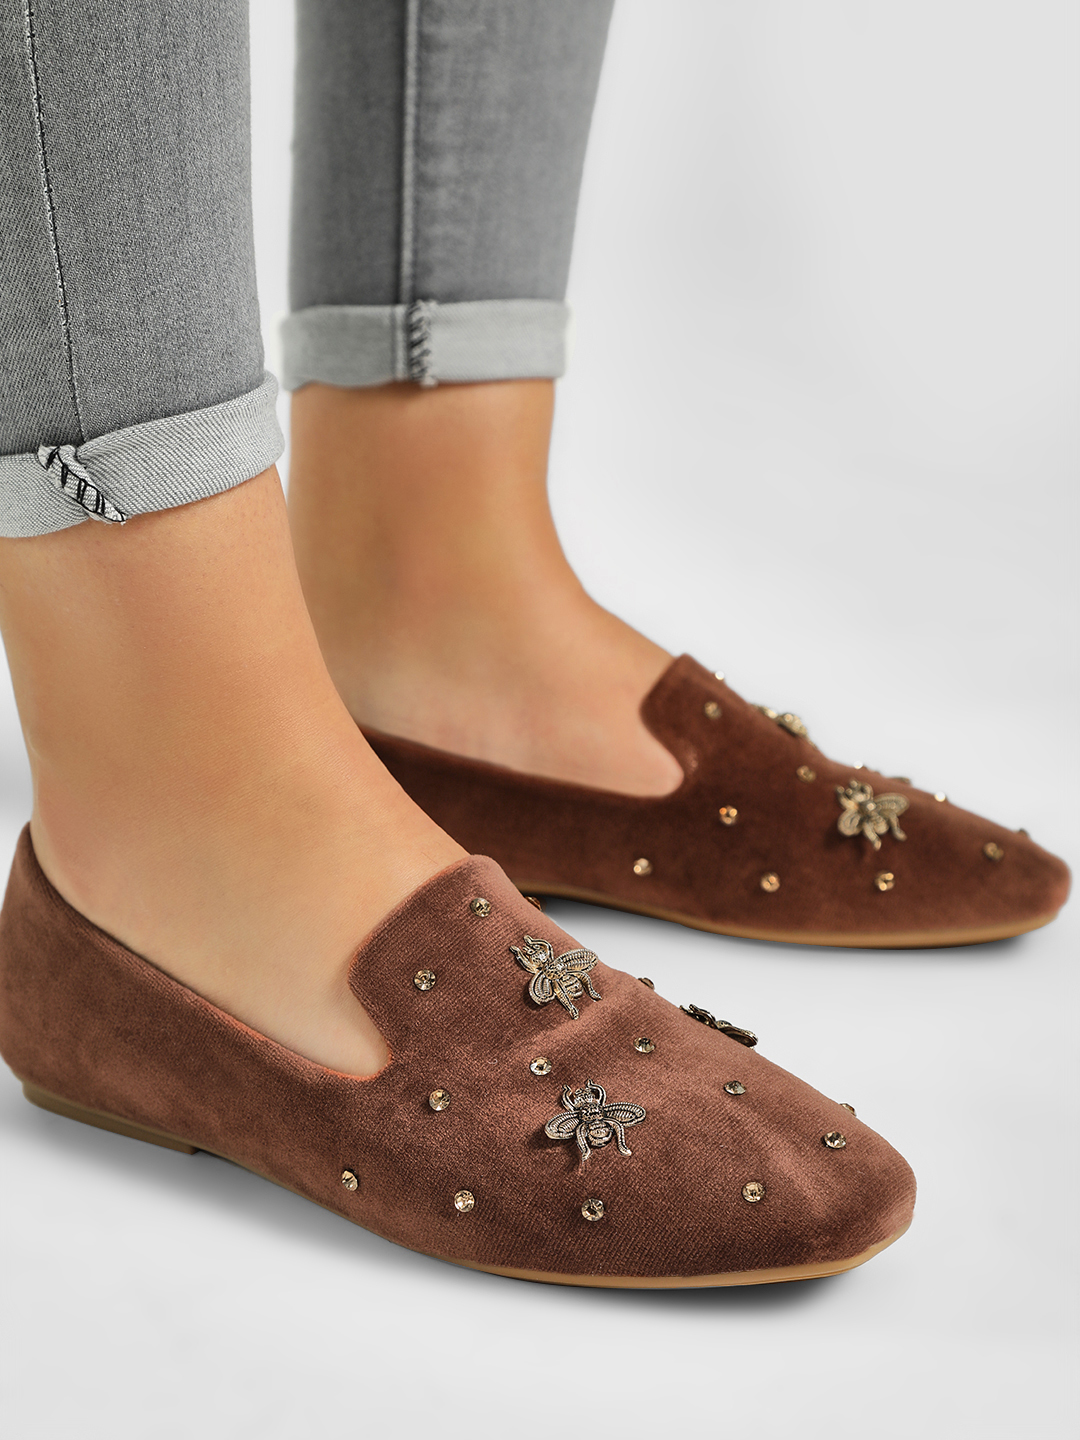 My Foot Couture Brown Suede Bee Embellished Flat Shoes 1